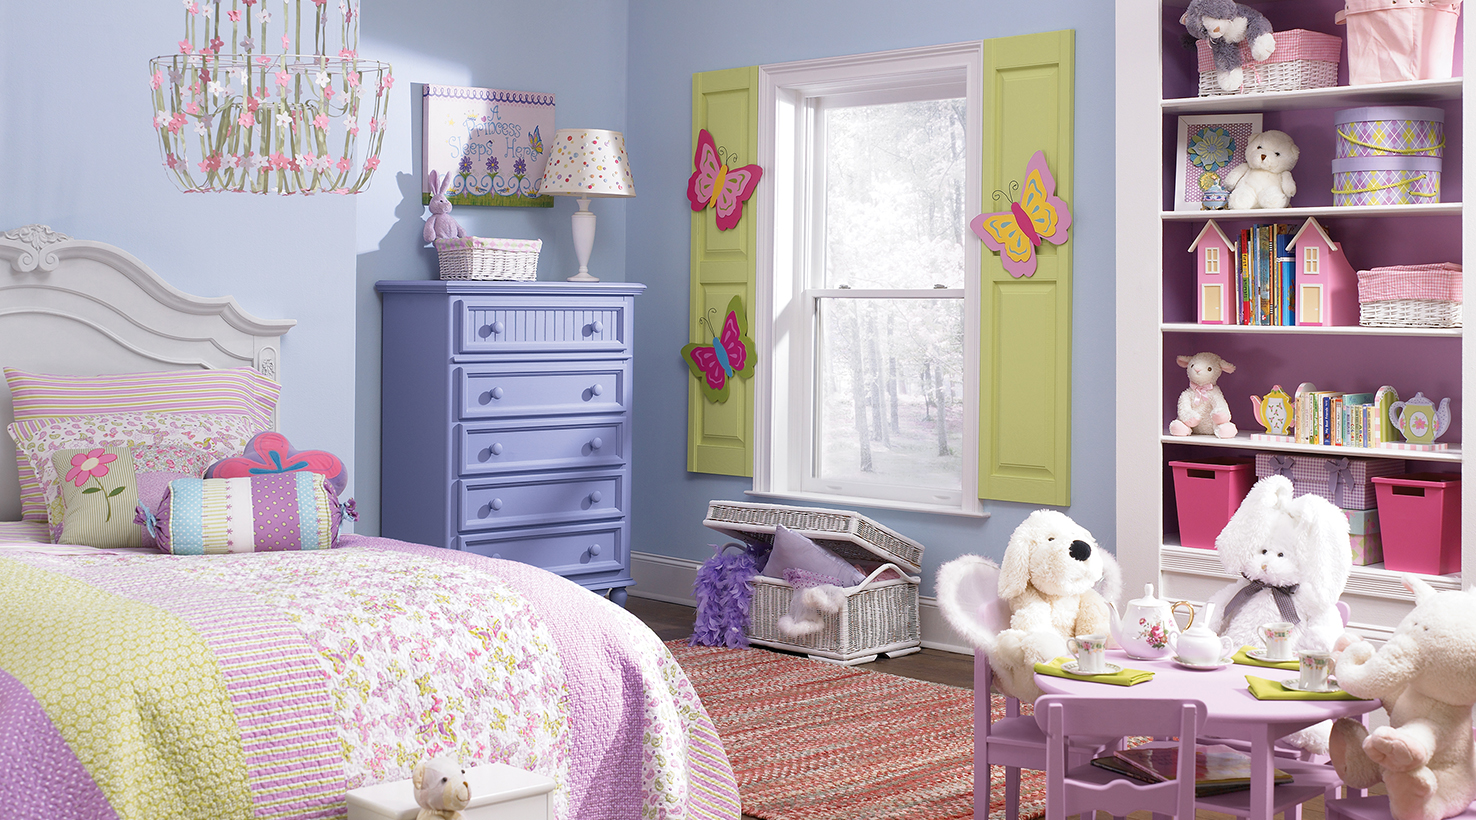 Fullsize Of Toddler Room Ideas